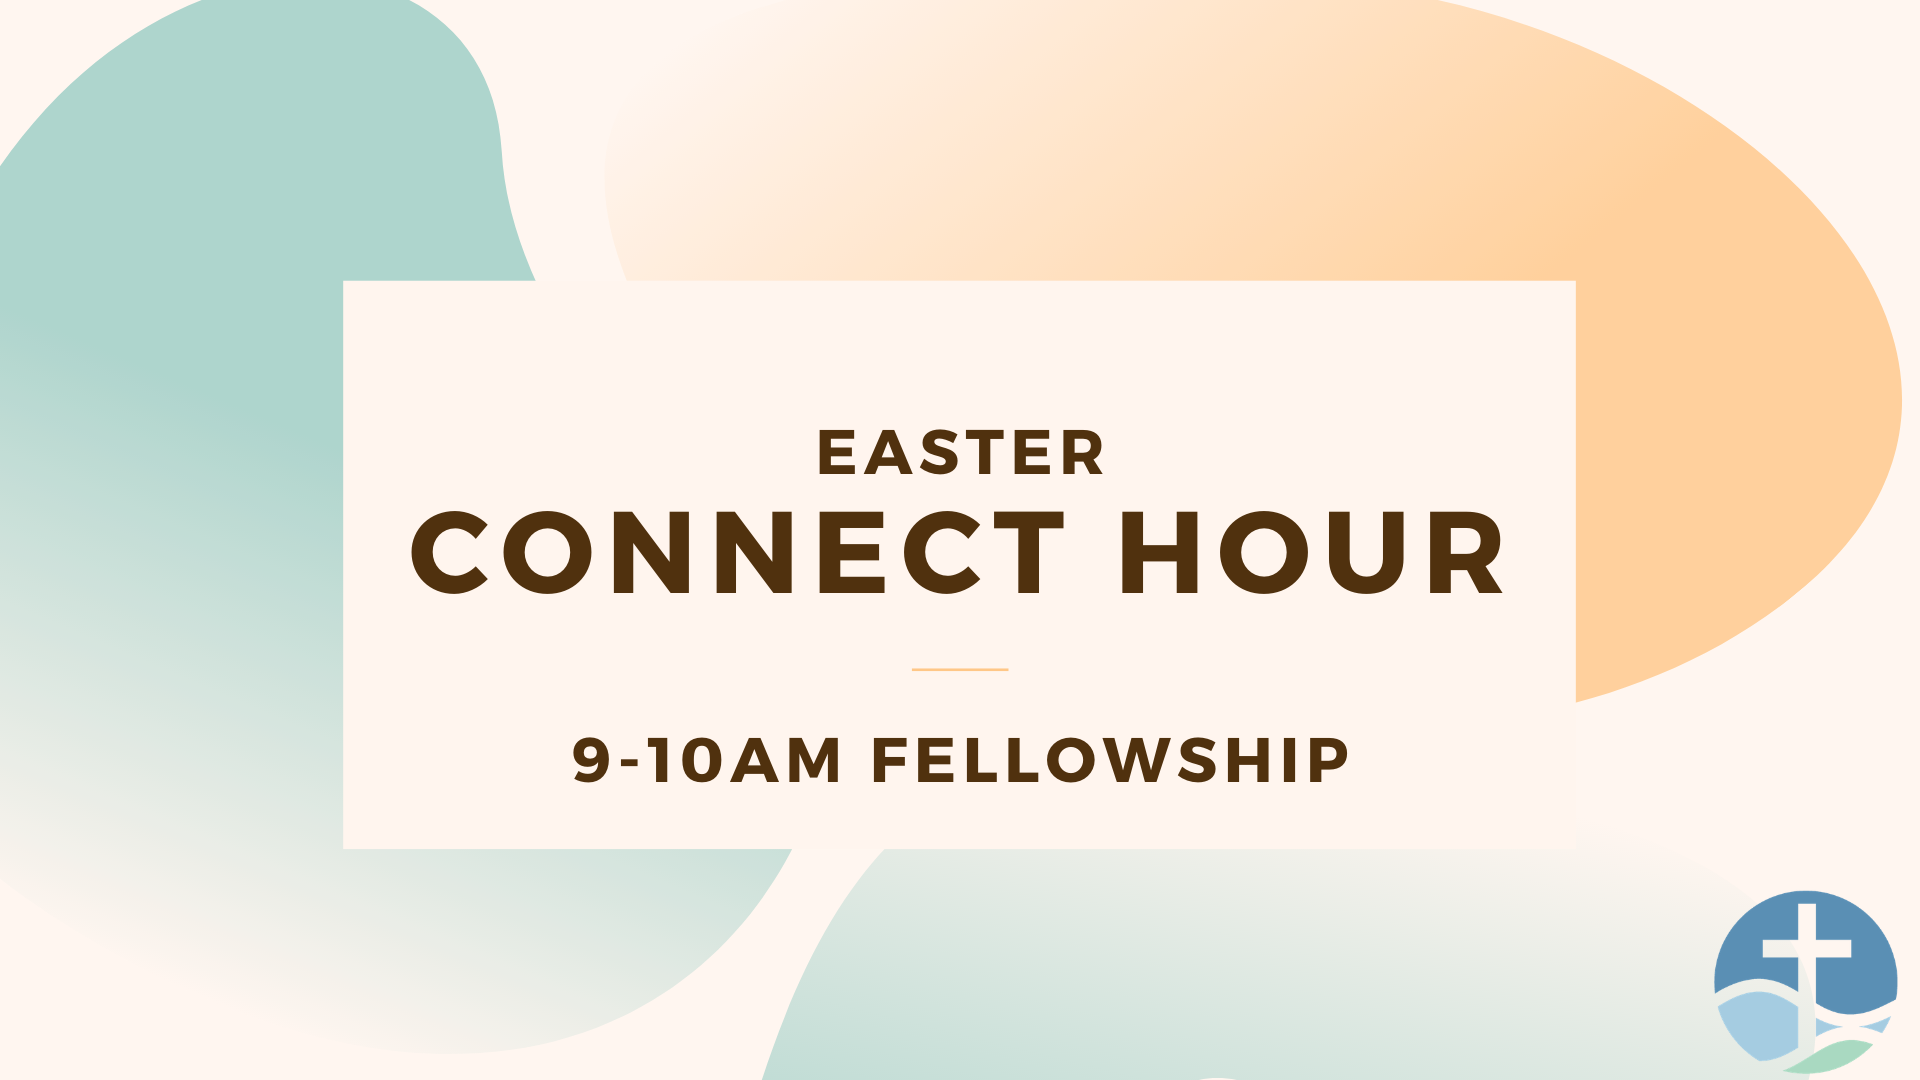 Easter Connect Hour